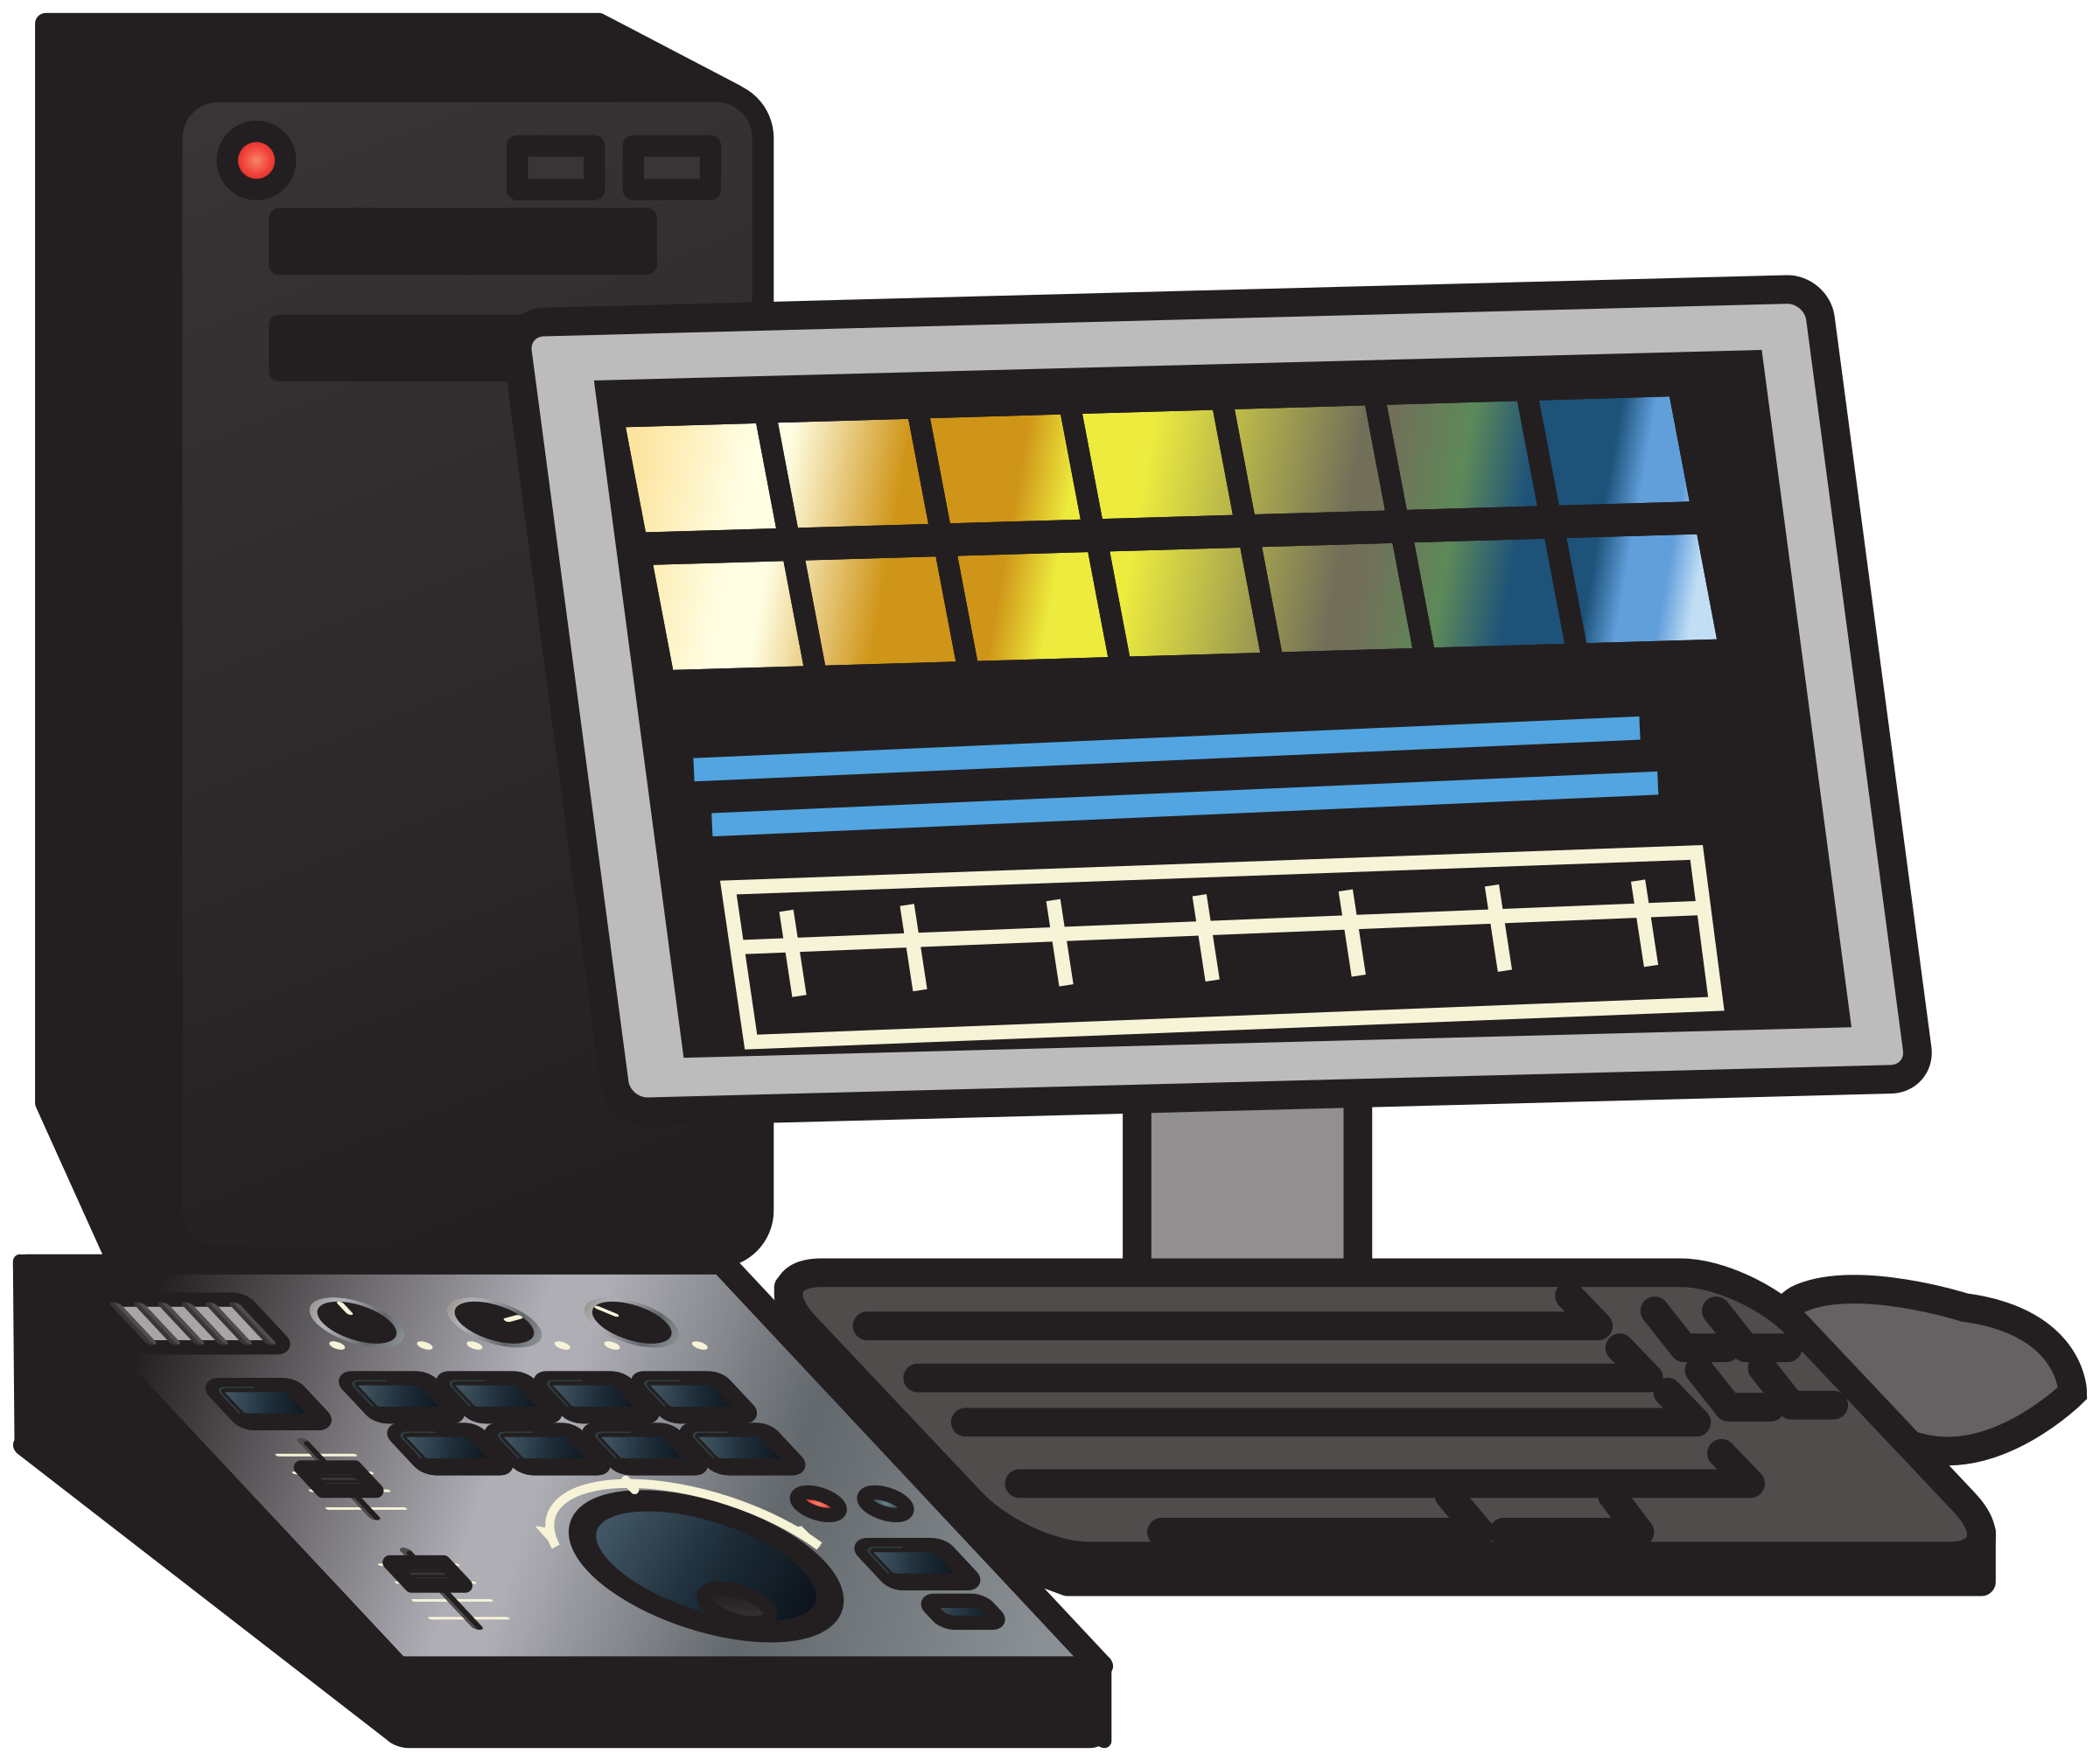 Non-linear video editing system 2 by Juhele